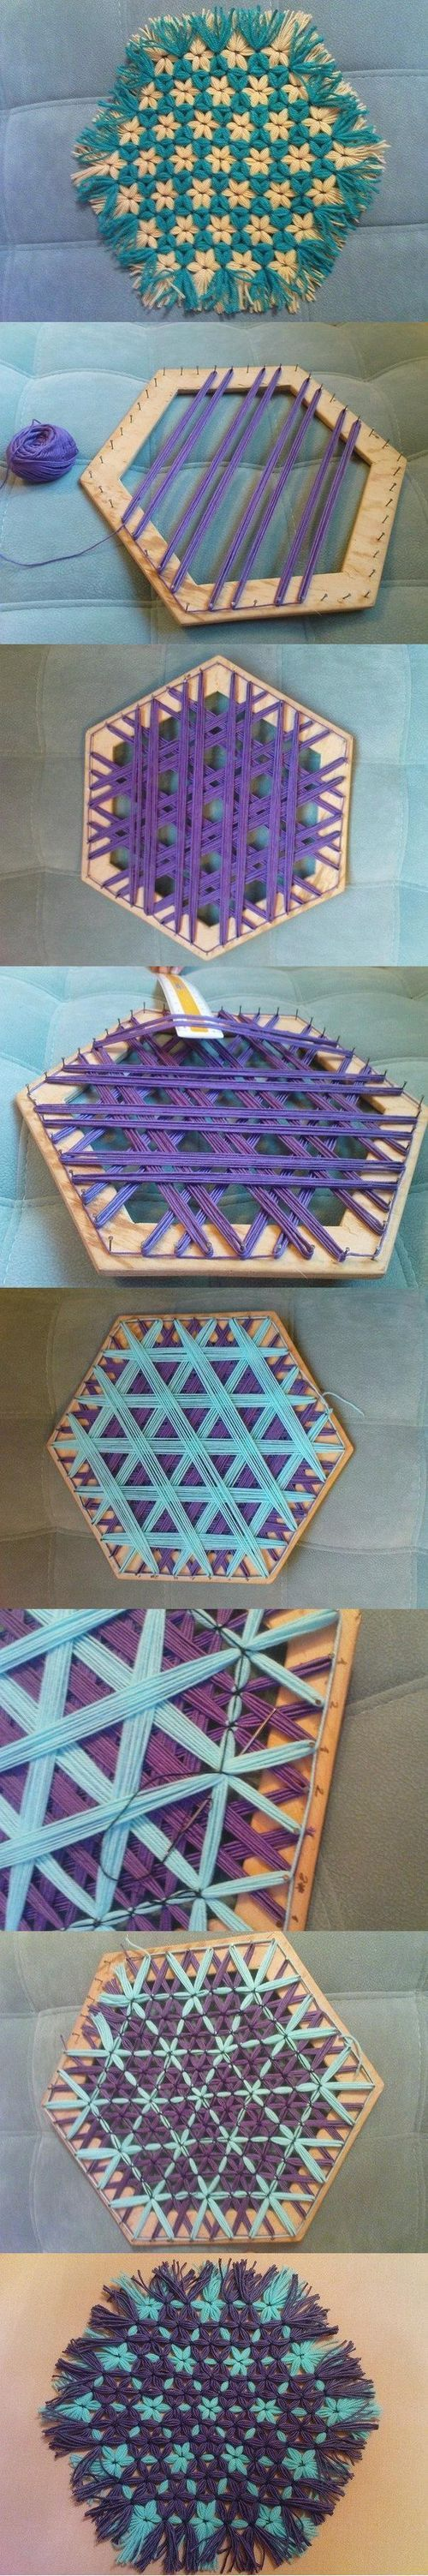 DIY Beautiful Hexagonal Coaster DIY Projects / UsefulDIY.com http://imgfave.com/view/3714056?u=234331